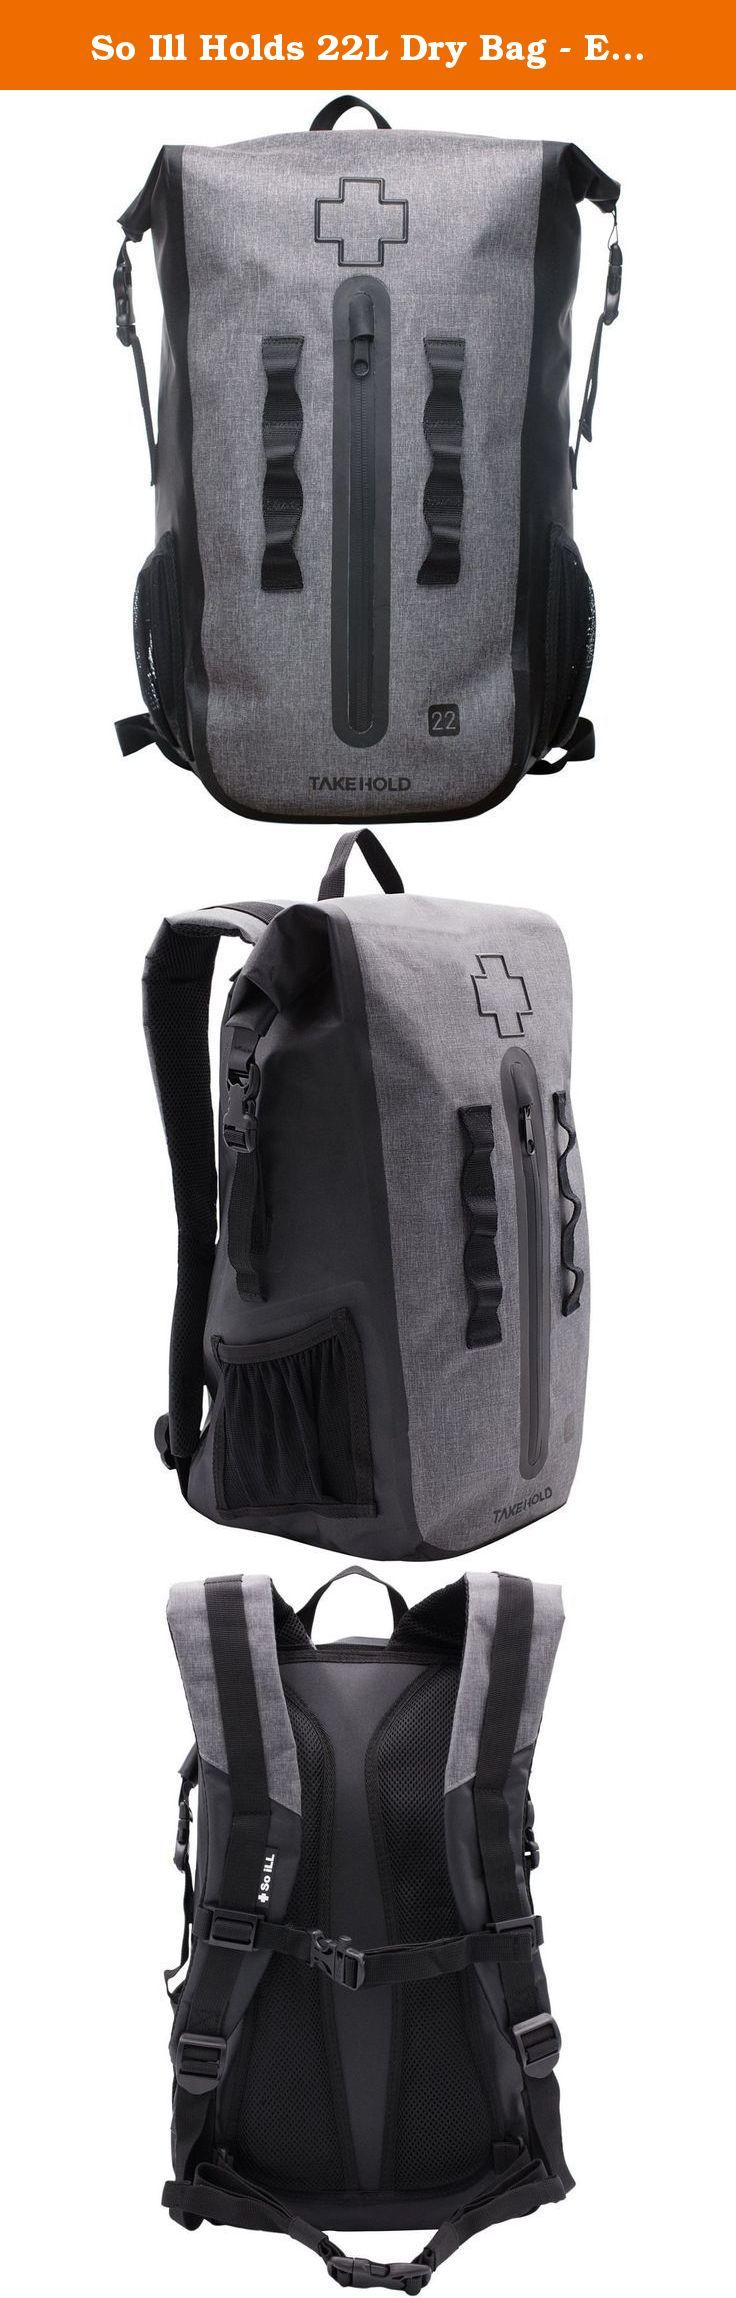 So Ill Holds 22L Dry Bag - Executive Series Black, 22L. Forget about checking in at the front desk--just brandish So Ill's Executive Series 22L Dry Bag and no one will be able to tell if you're just another member or the CEO of gym. This backpack fits the bare essentials needed for gym sessions and a day at the crag, if you're splitting gear with your partner. The pack's dual roll-top closure keeps your climbing contents secure, even if you punt the pack down the approach. The front…